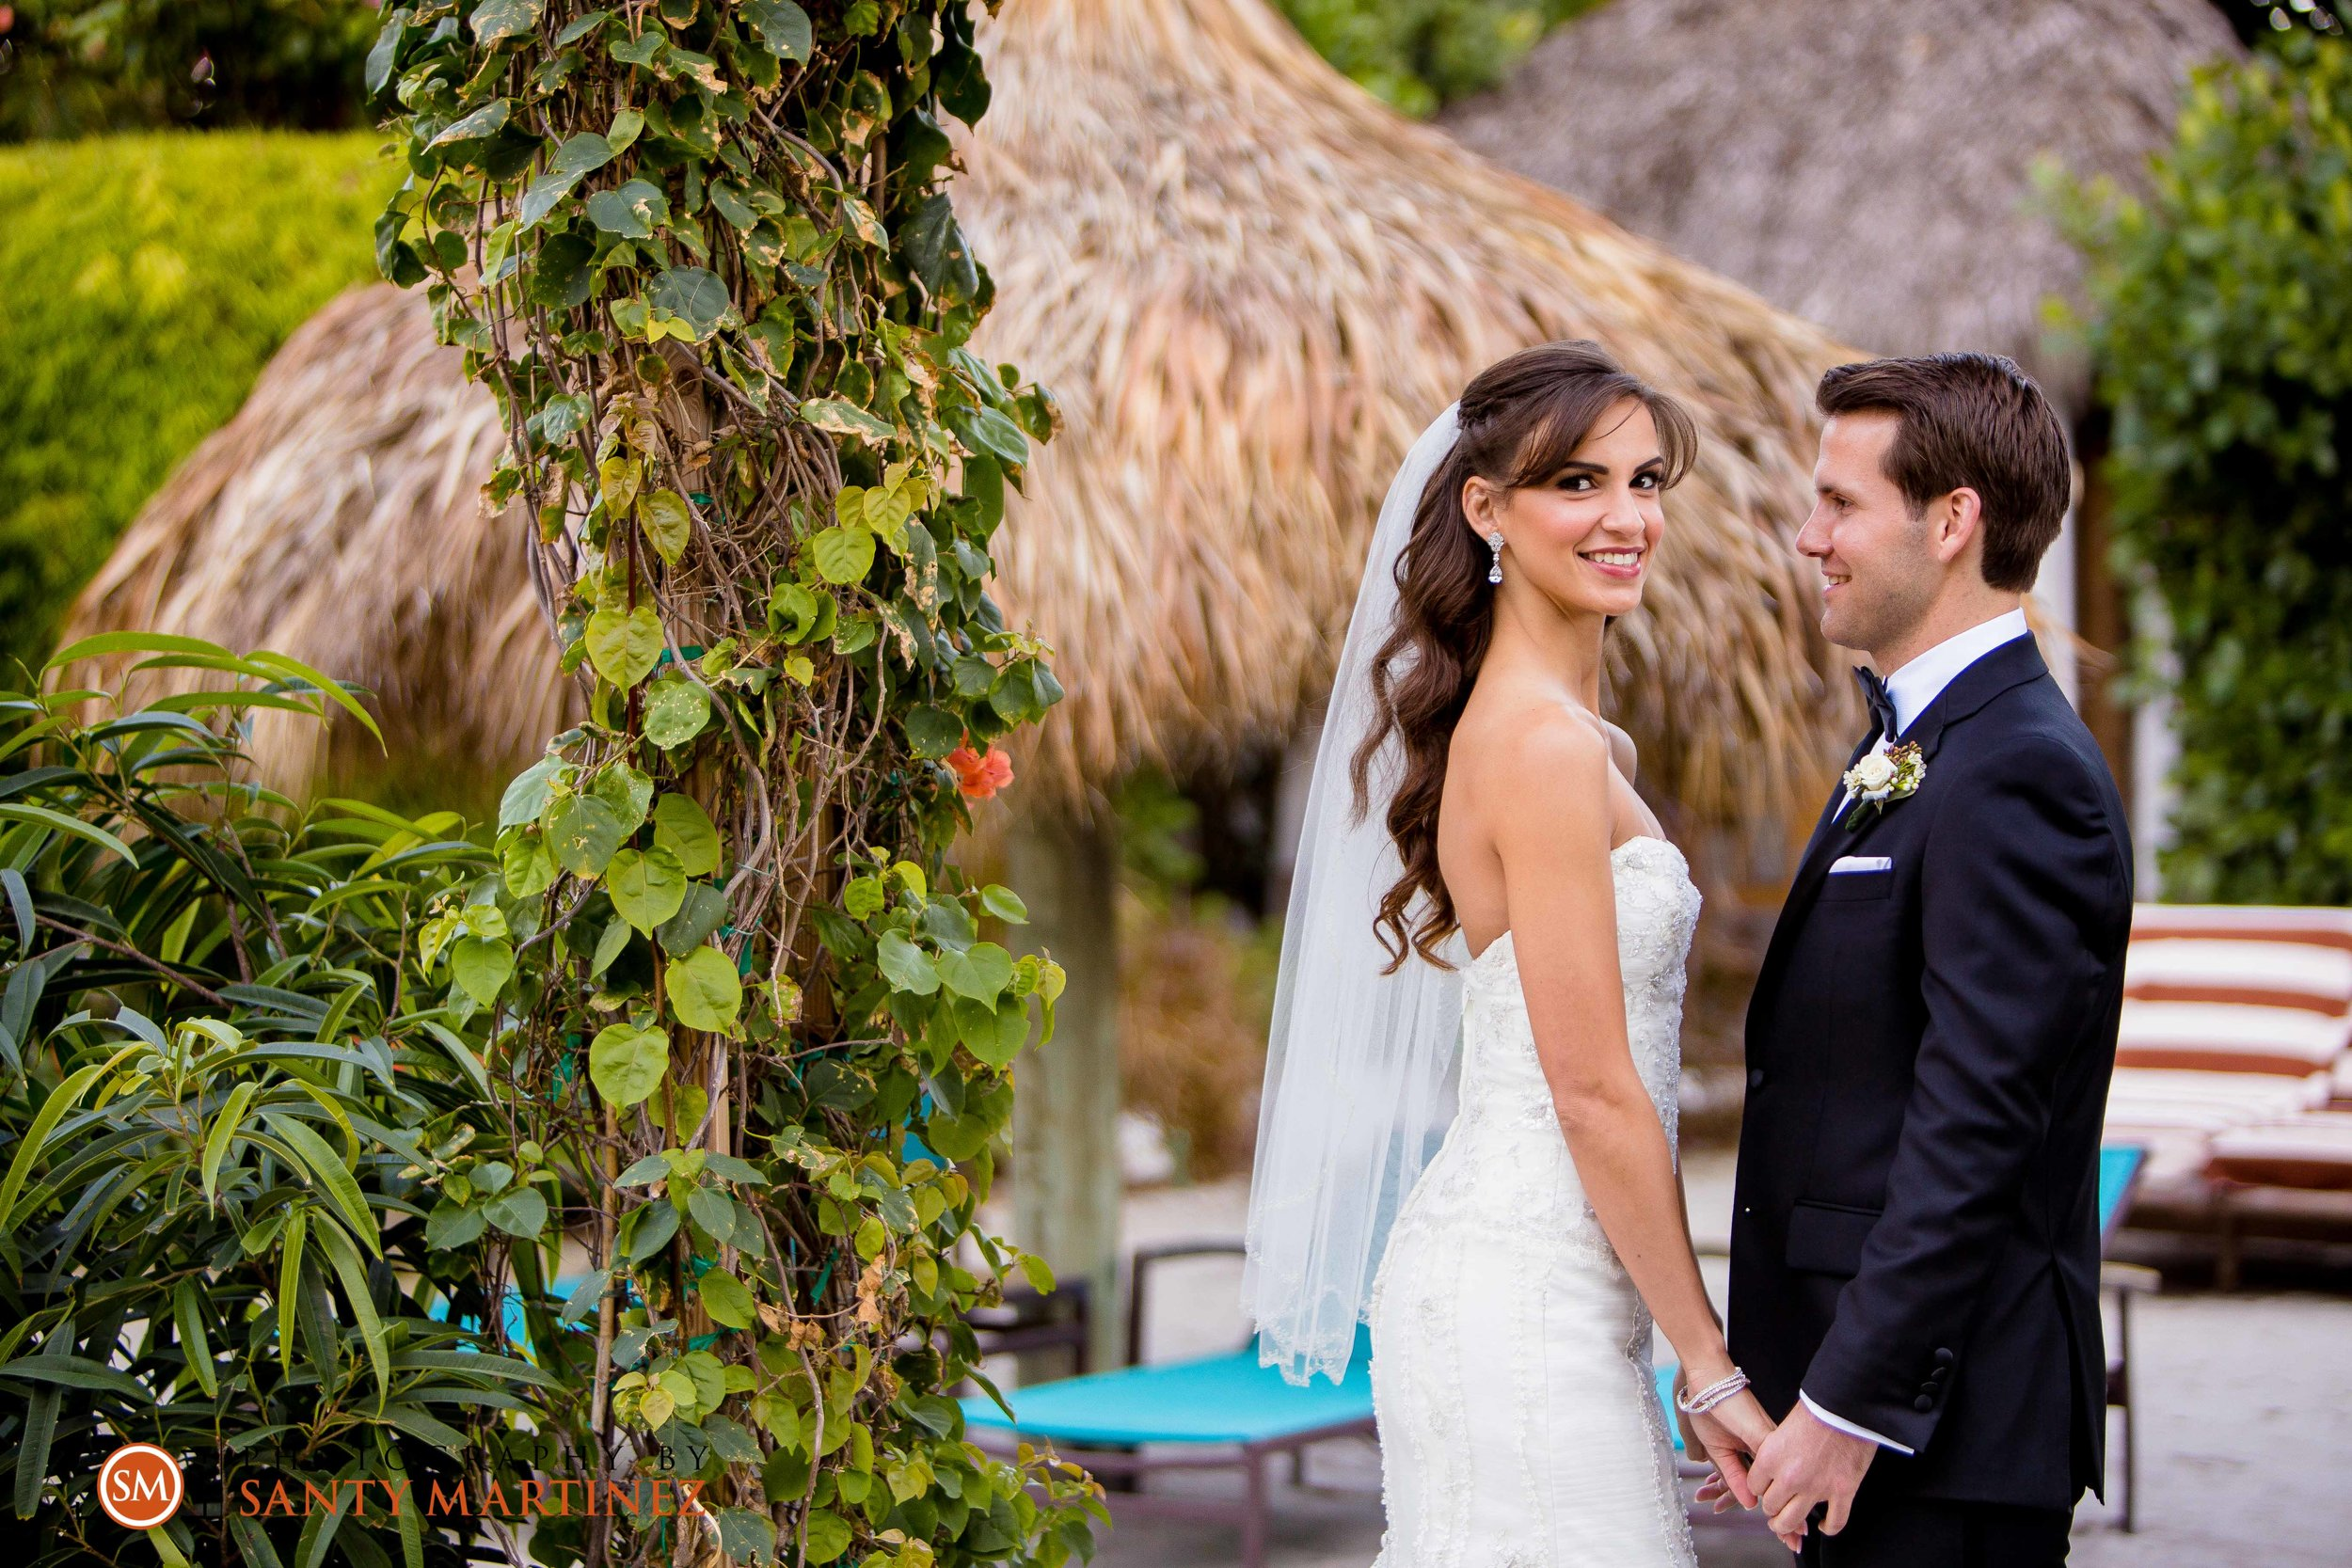 Miami Wedding Photographer - Santy Martinez -17.jpg